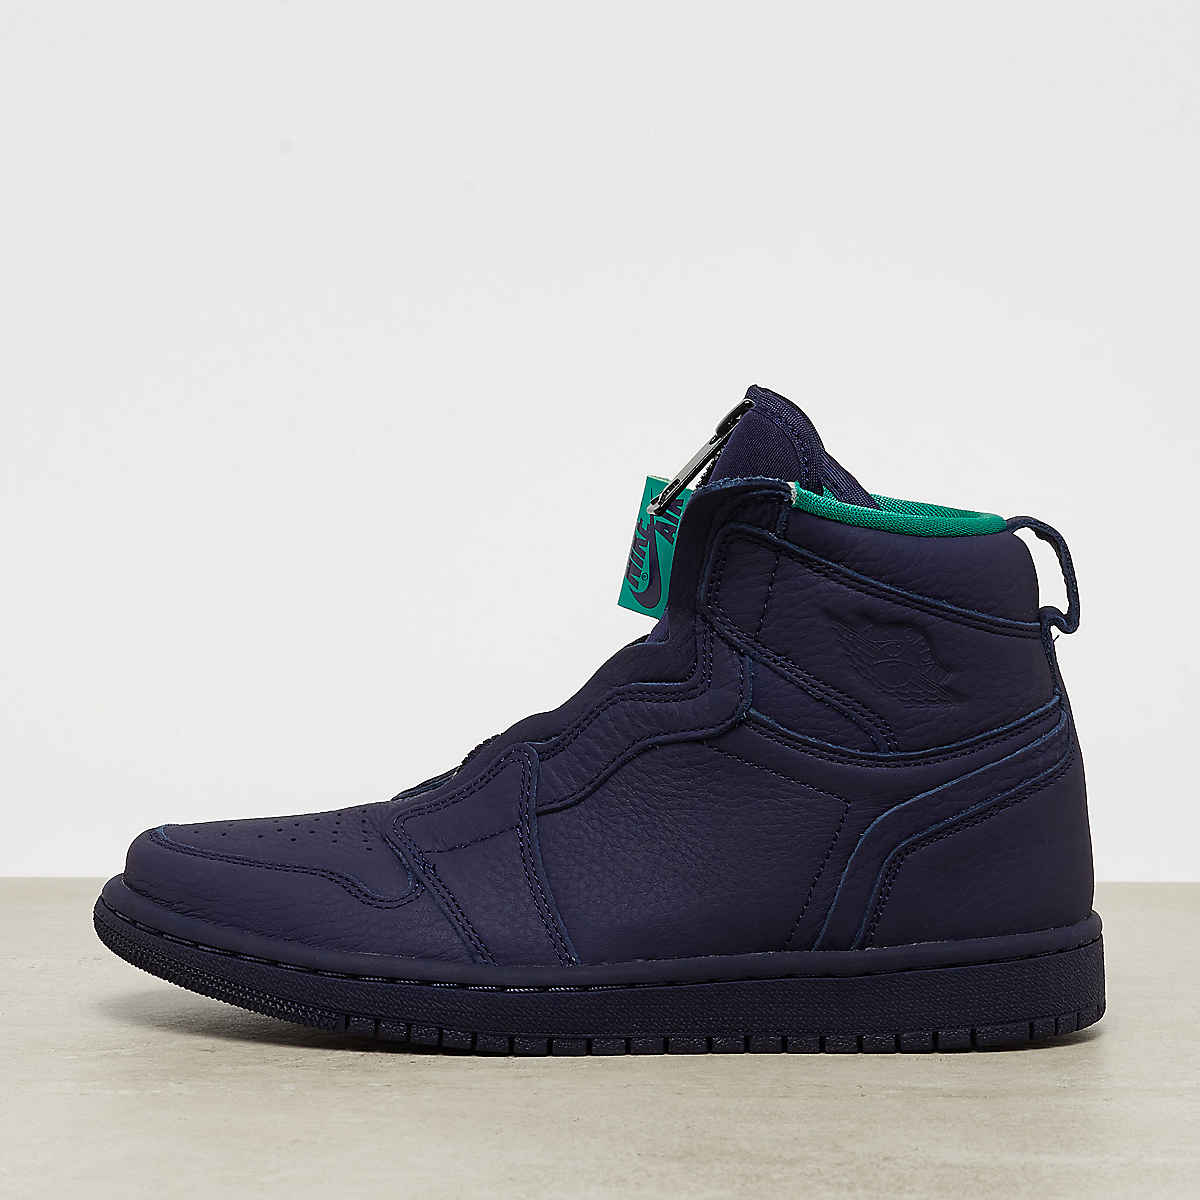 new products b5131 ae880 Wmns Air Jordan 1 High Zip blackened blue neptune green-wht